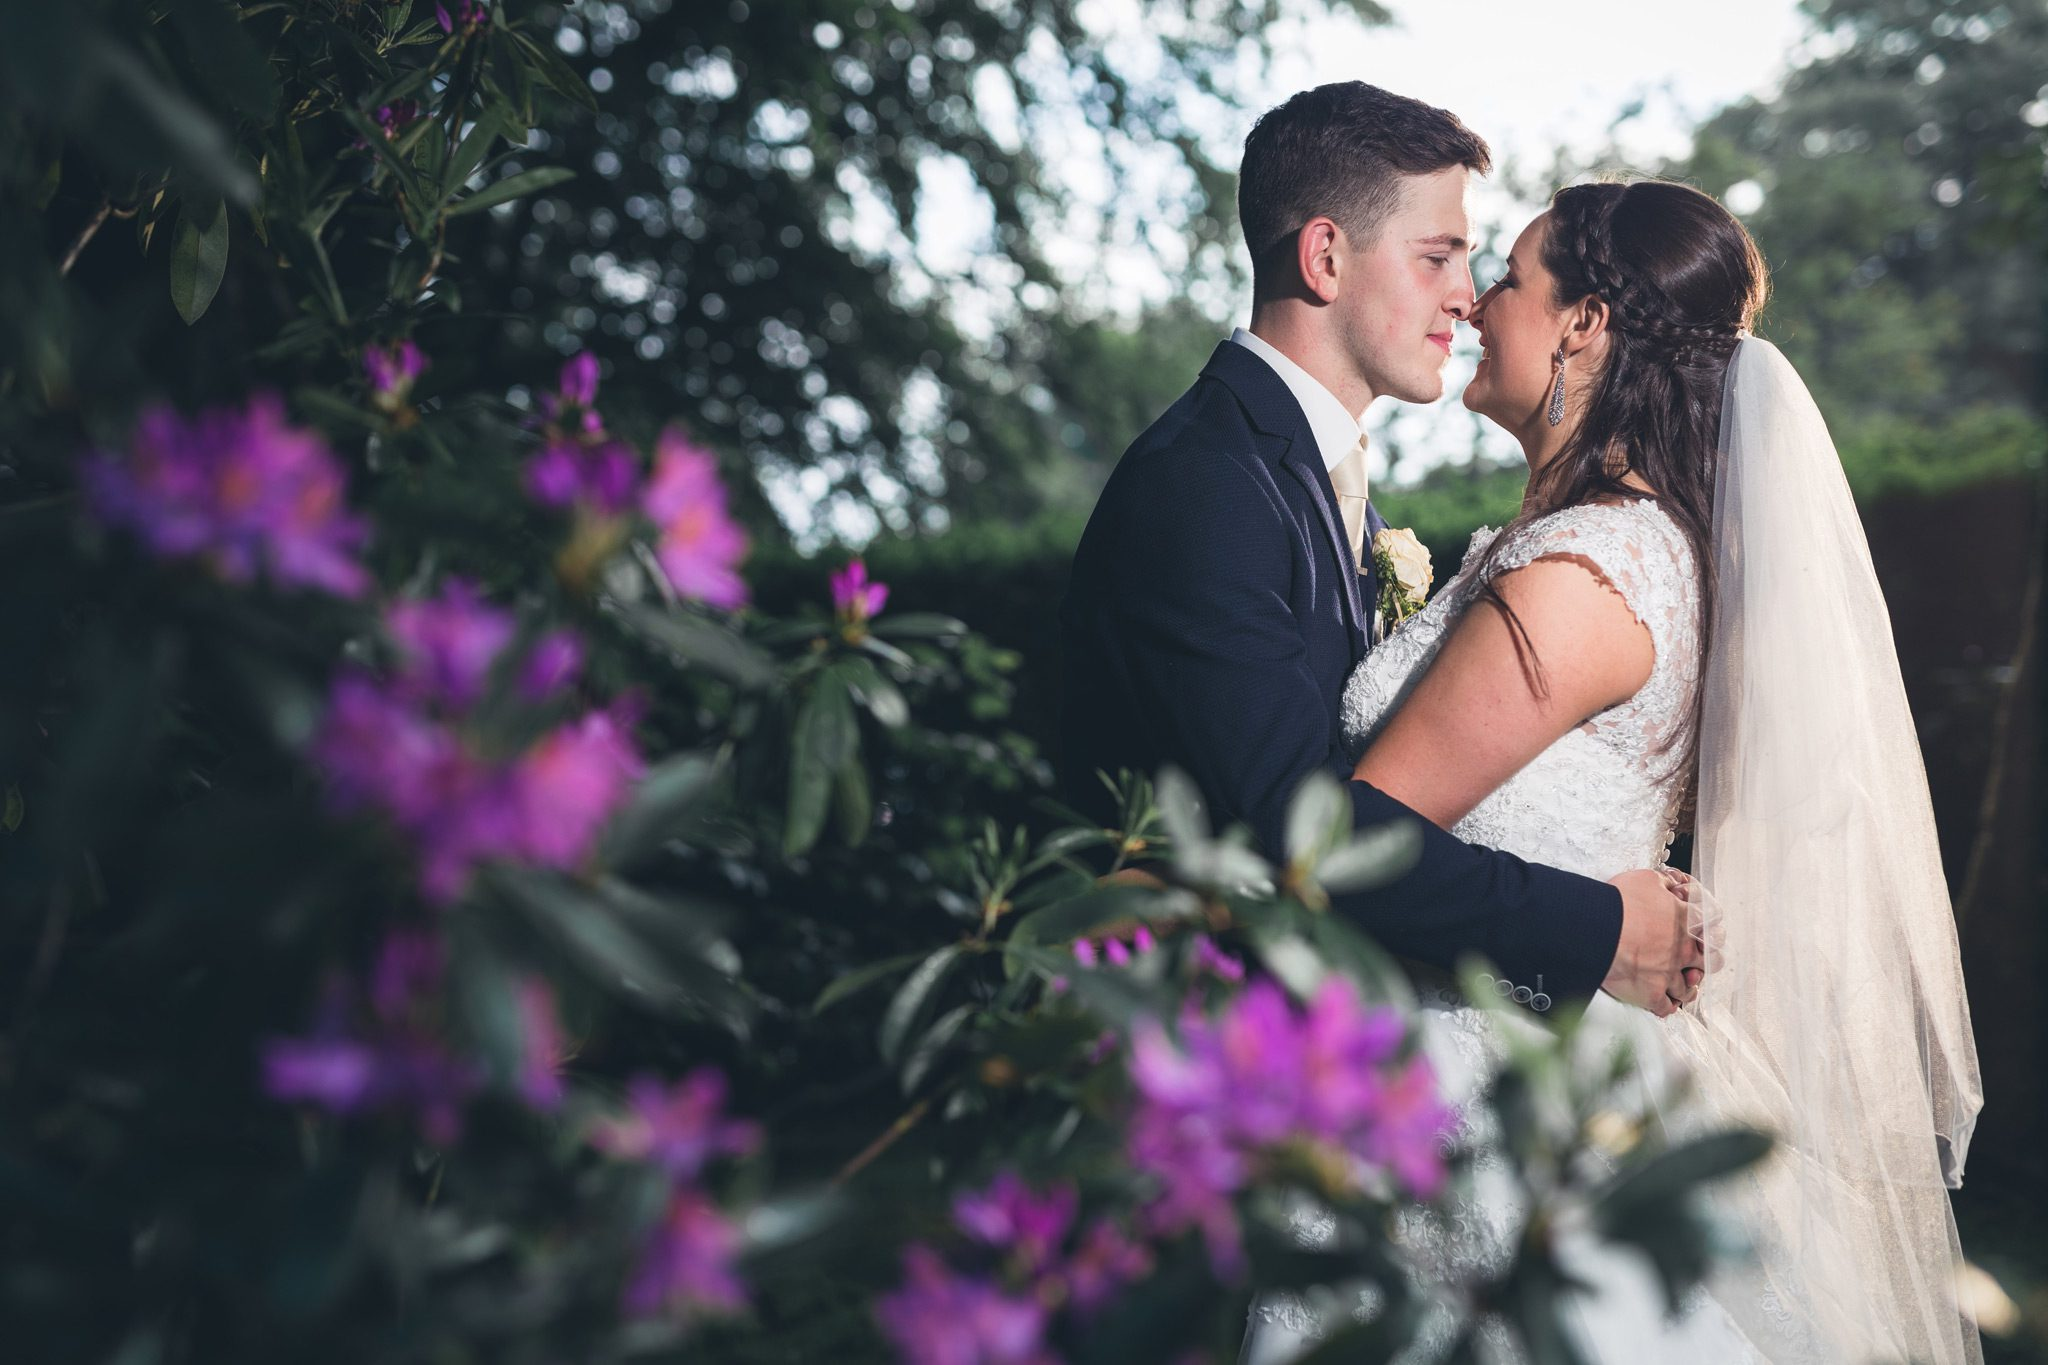 Wedding couple in love through the flowers